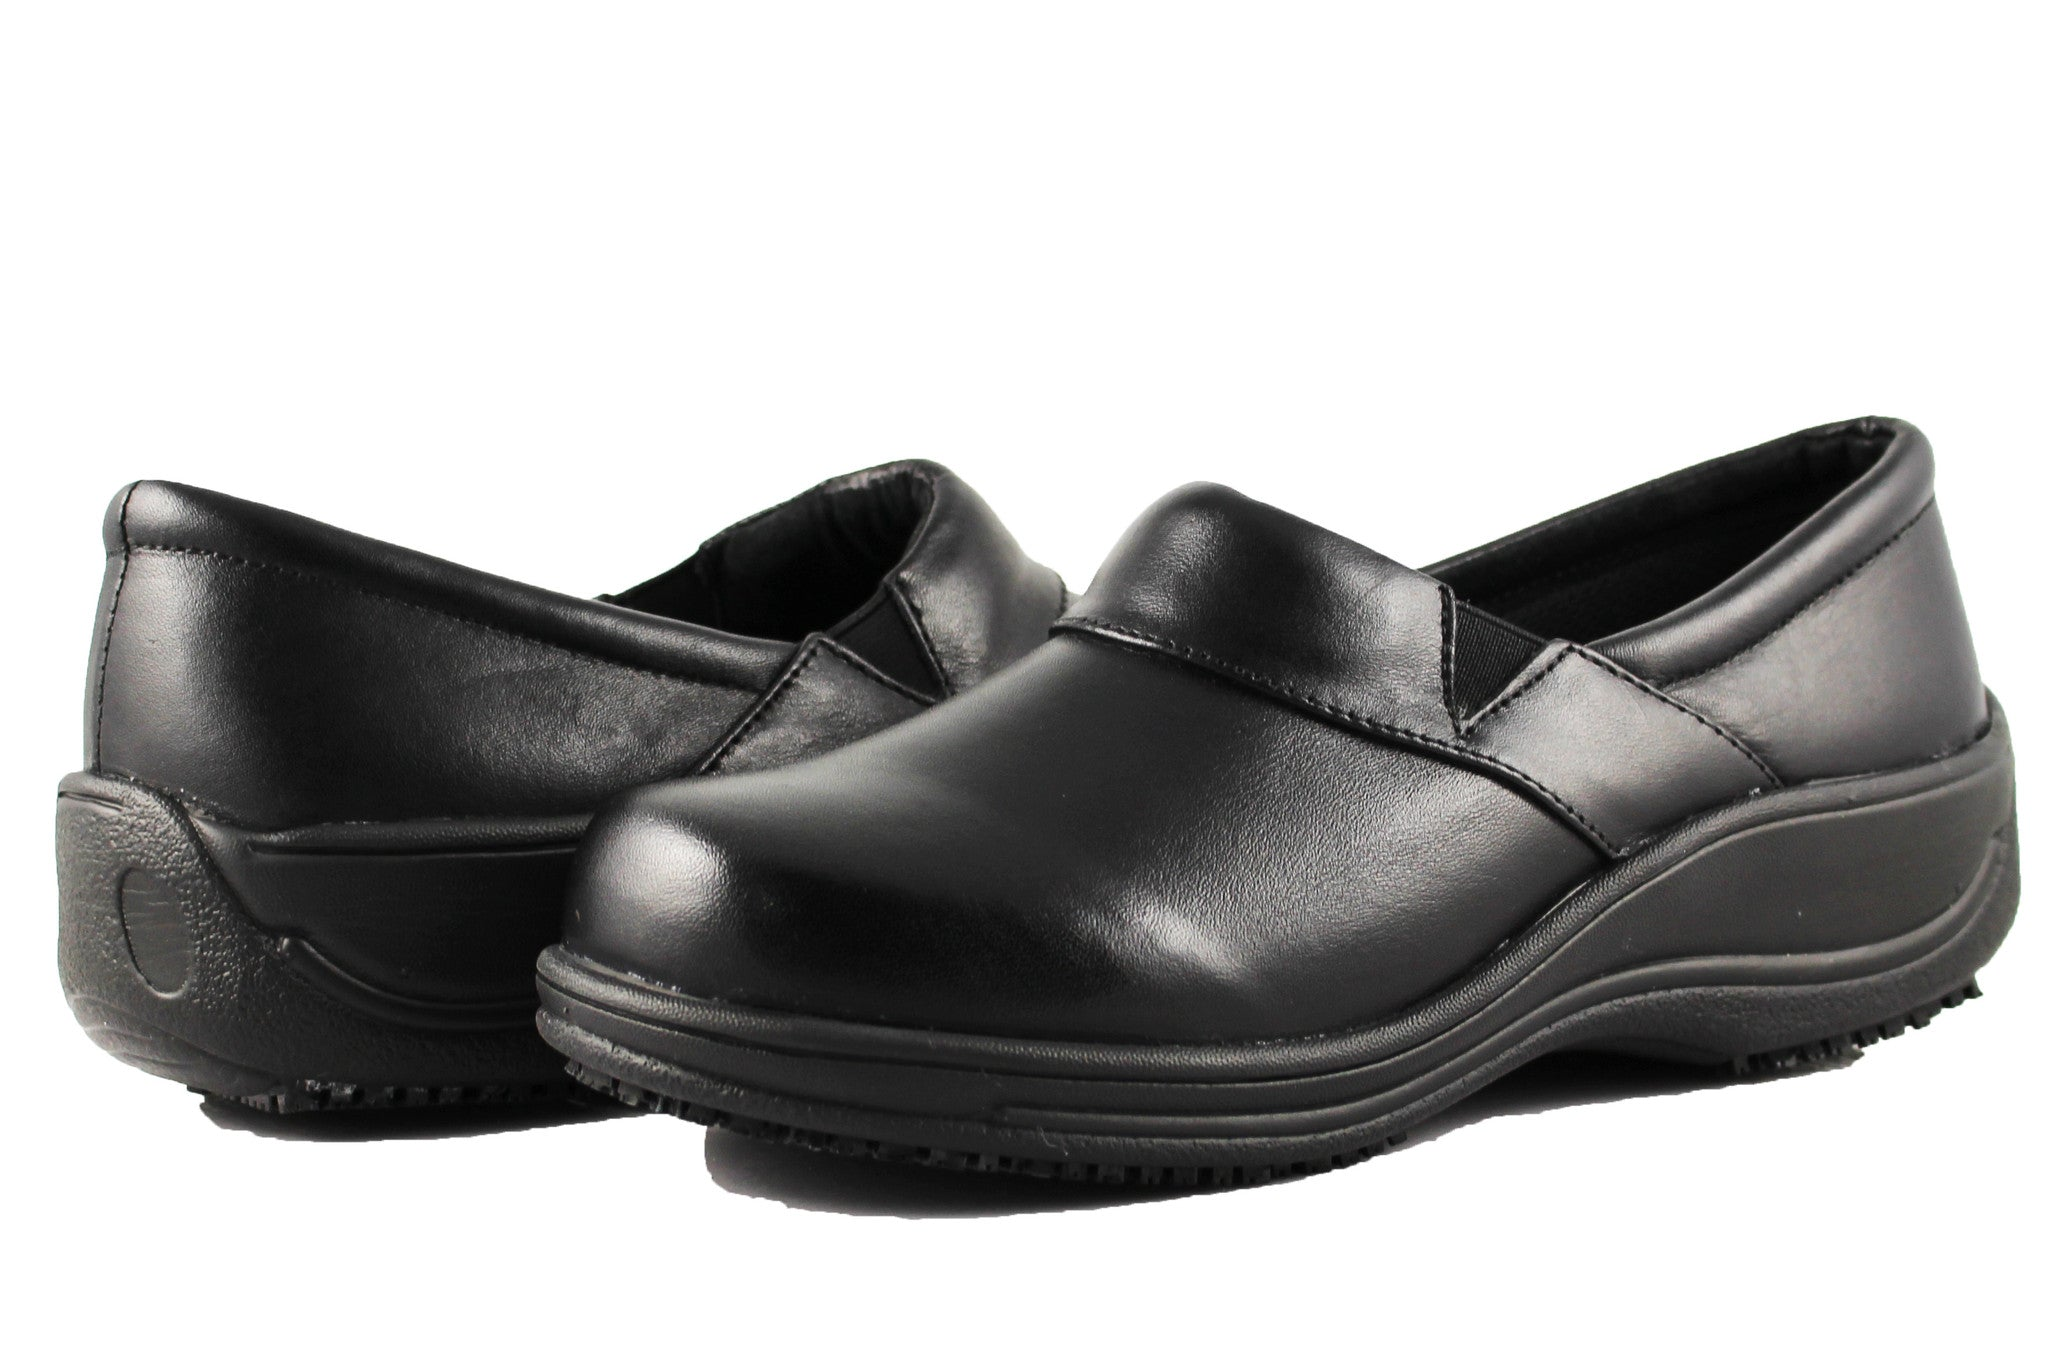 oxford shoes comforter s view ptc comfortable in most keen footwear m p men small dress pps black pdp for